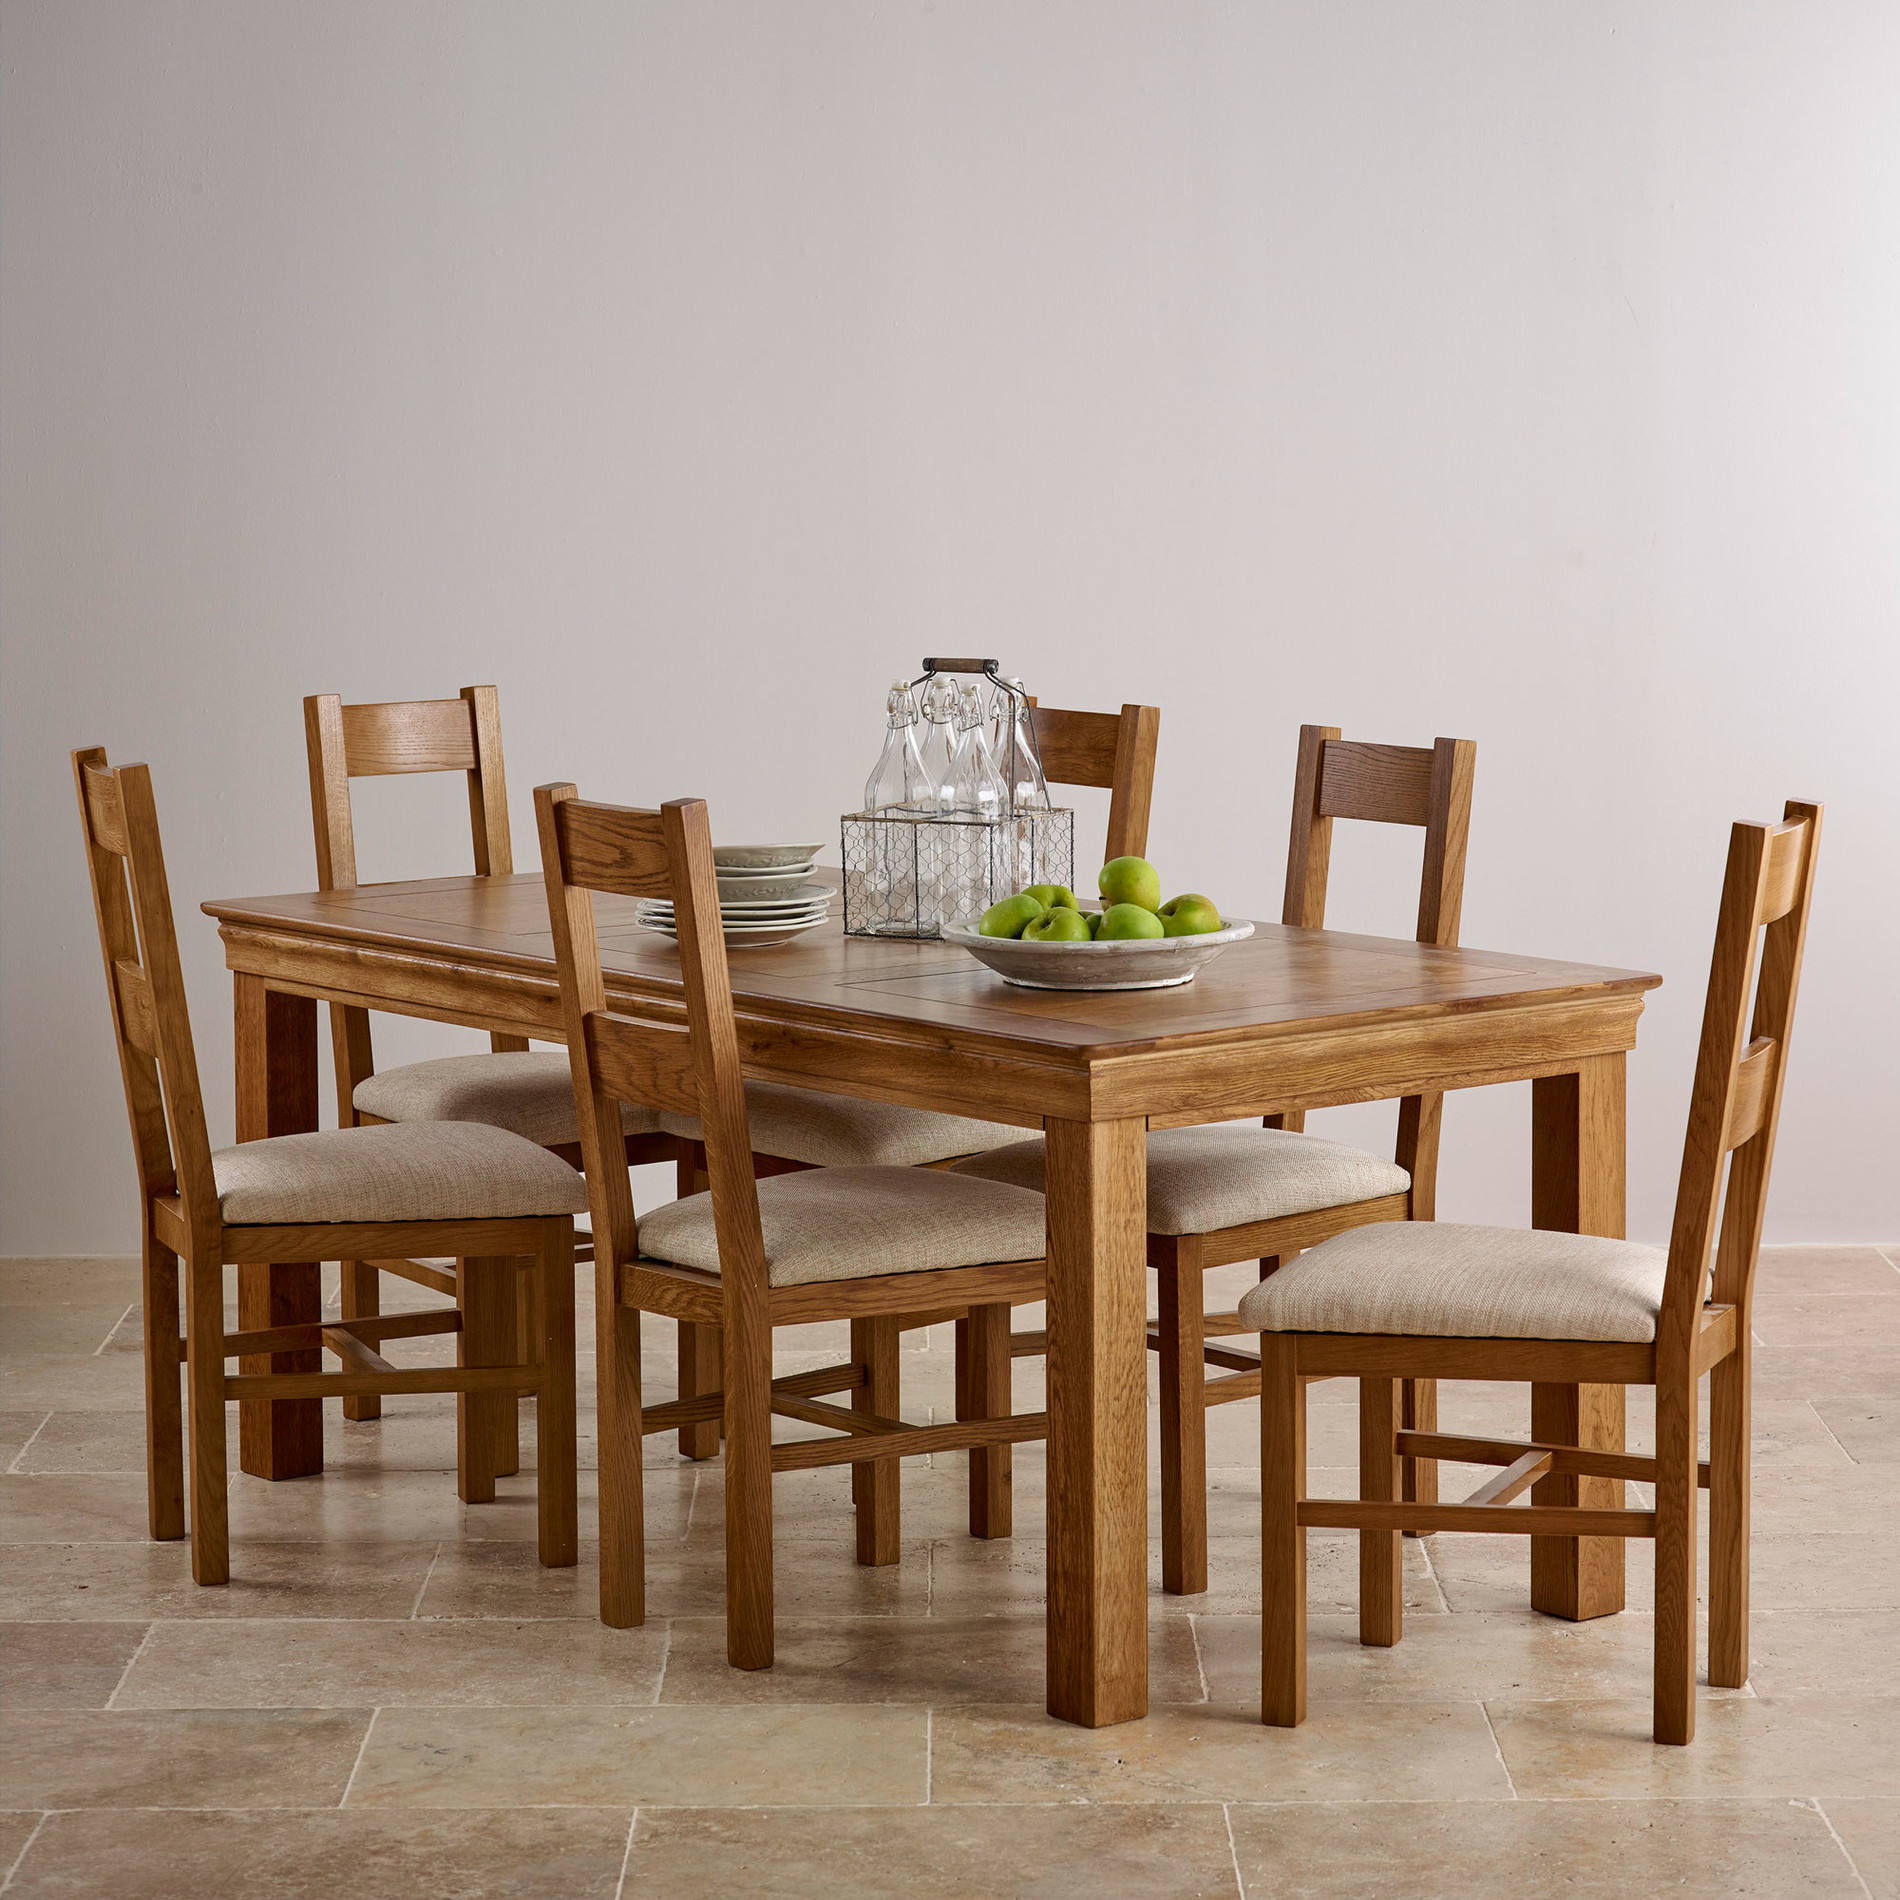 French Farmhouse Rustic Solid Oak Dining Set